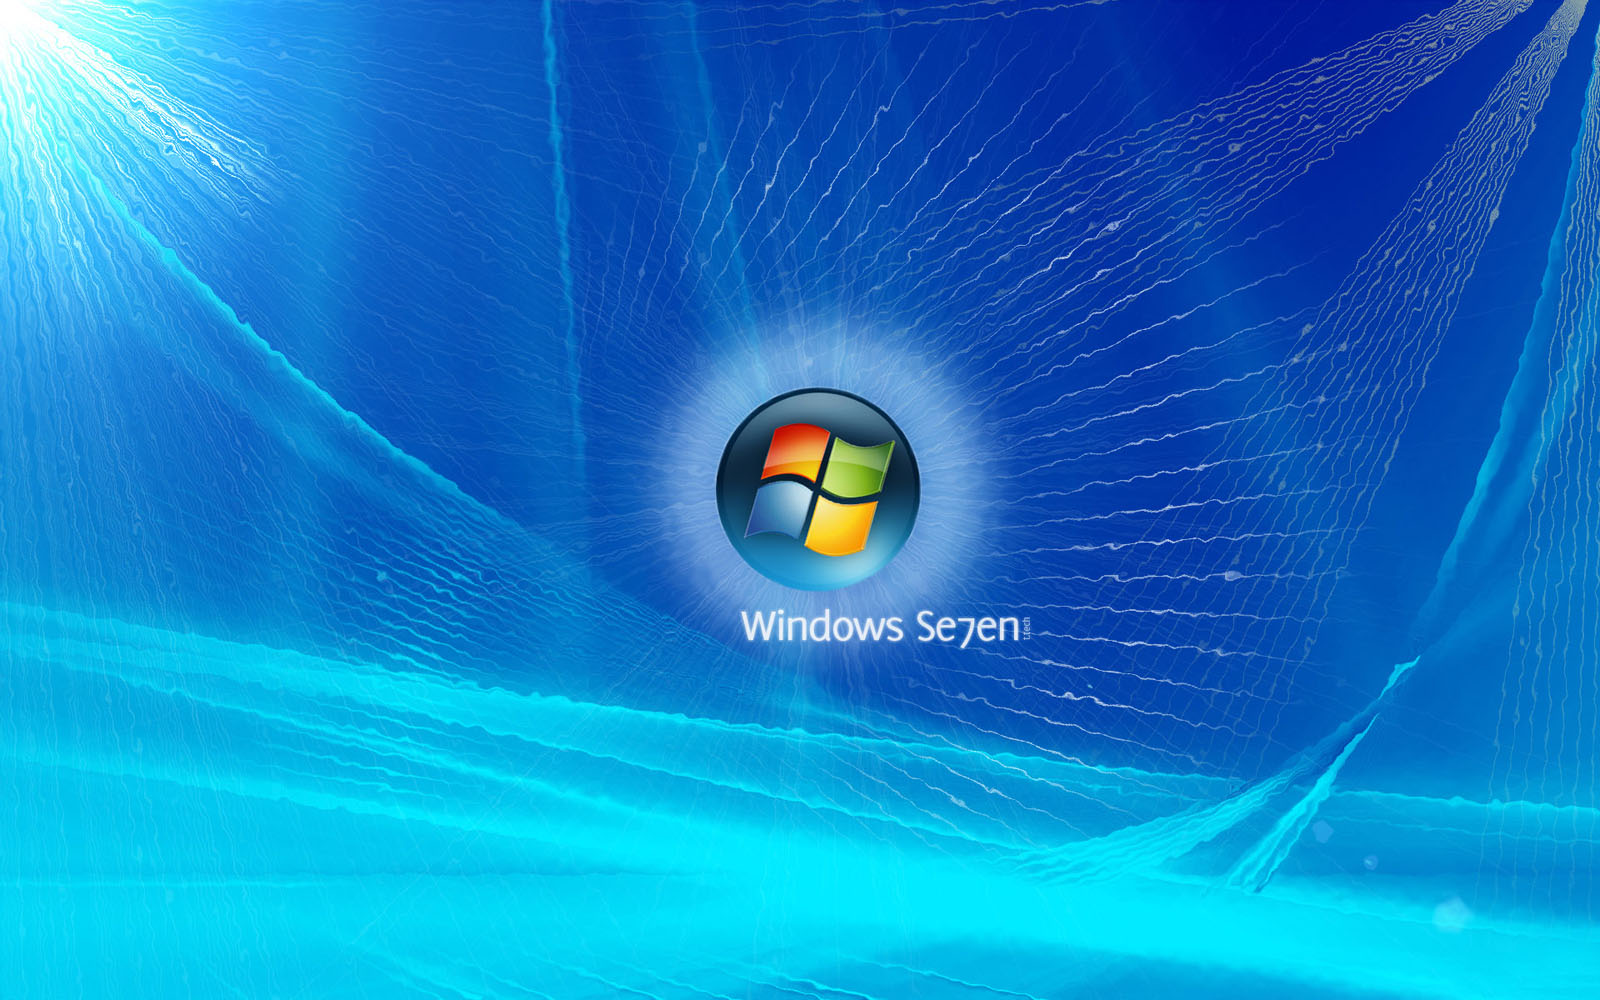 how to change my wallpaper on windows 7